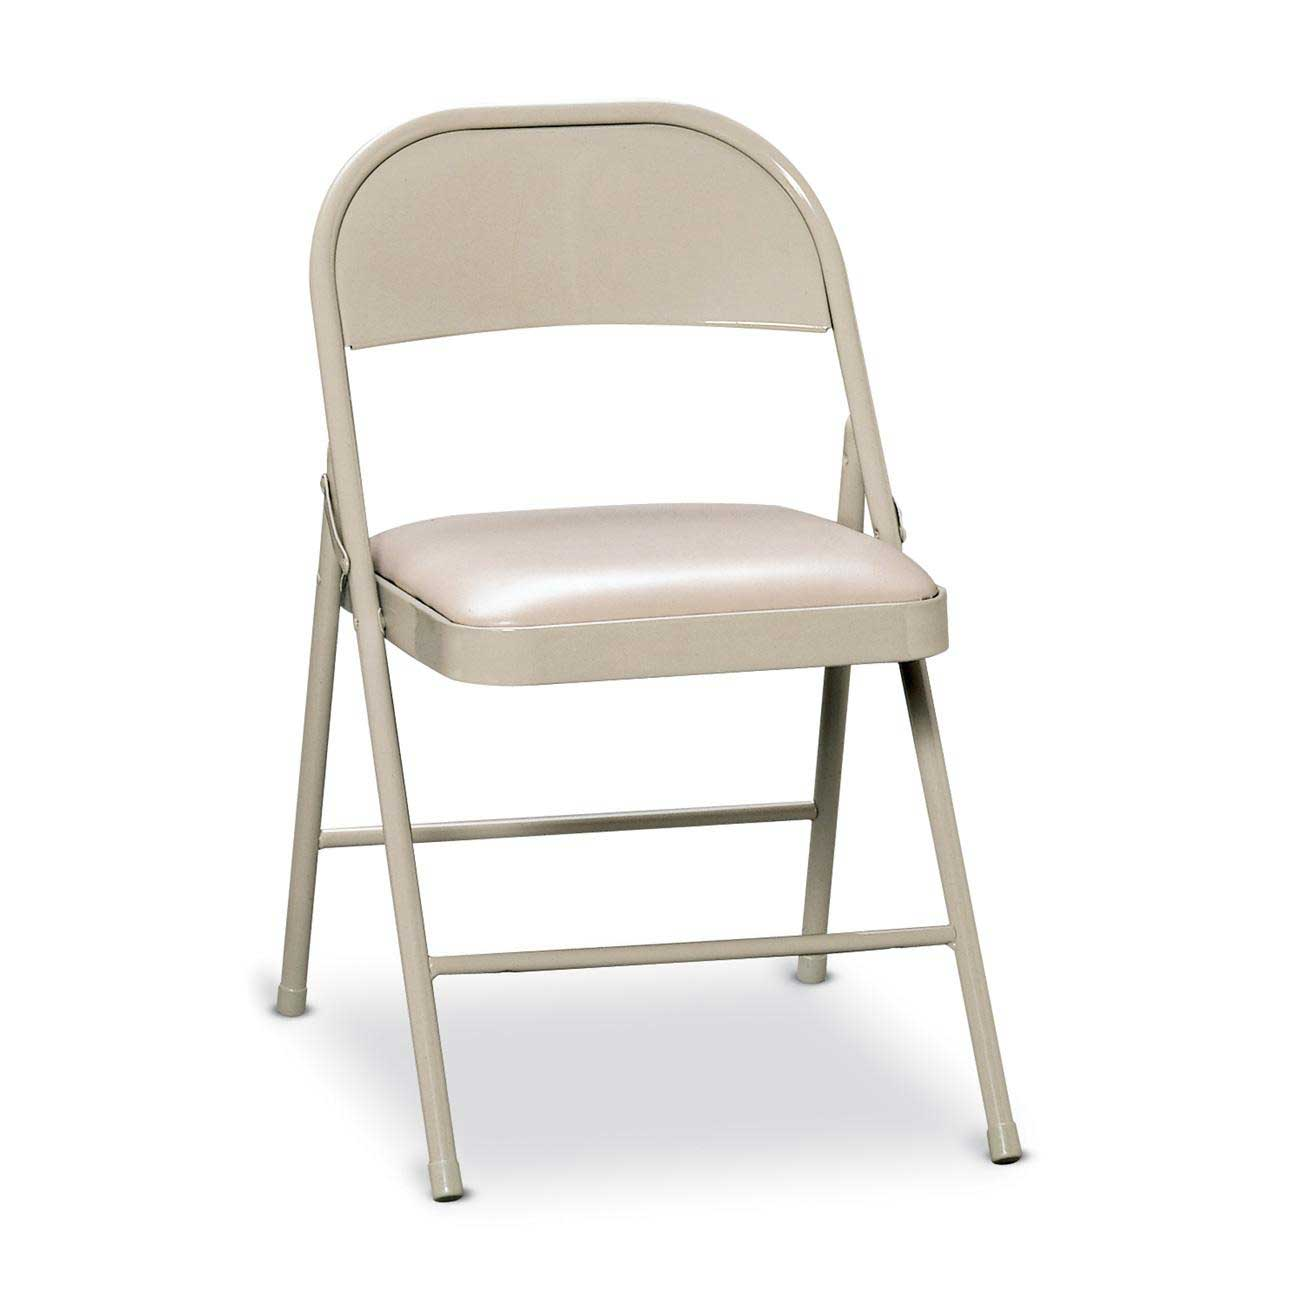 folding chairs reviews